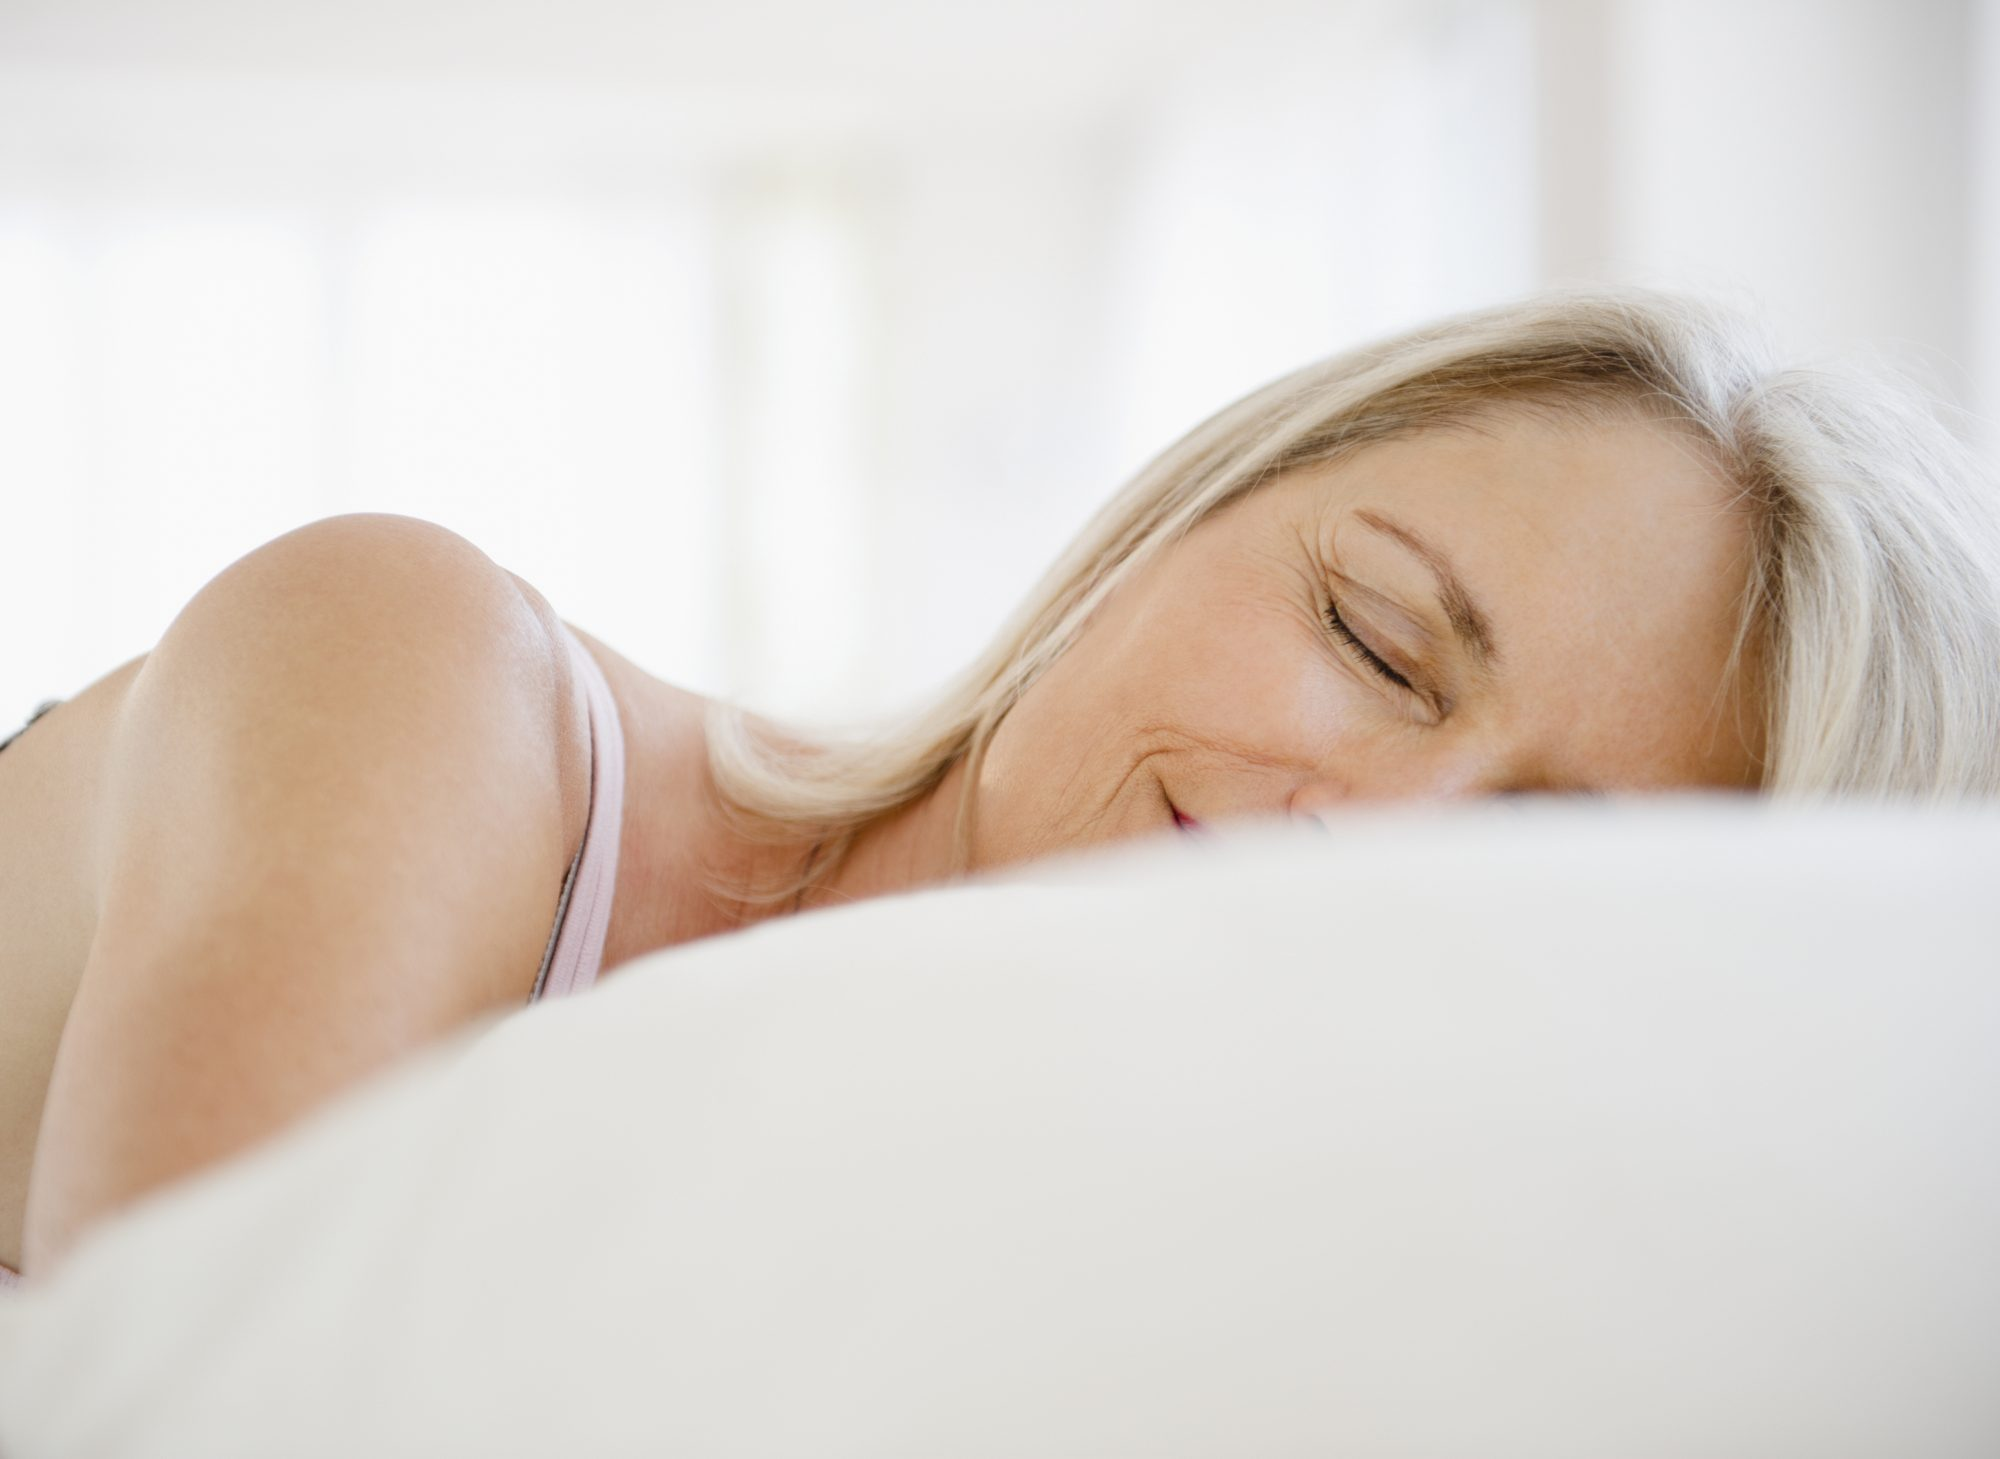 Myth: Older people need less sleep